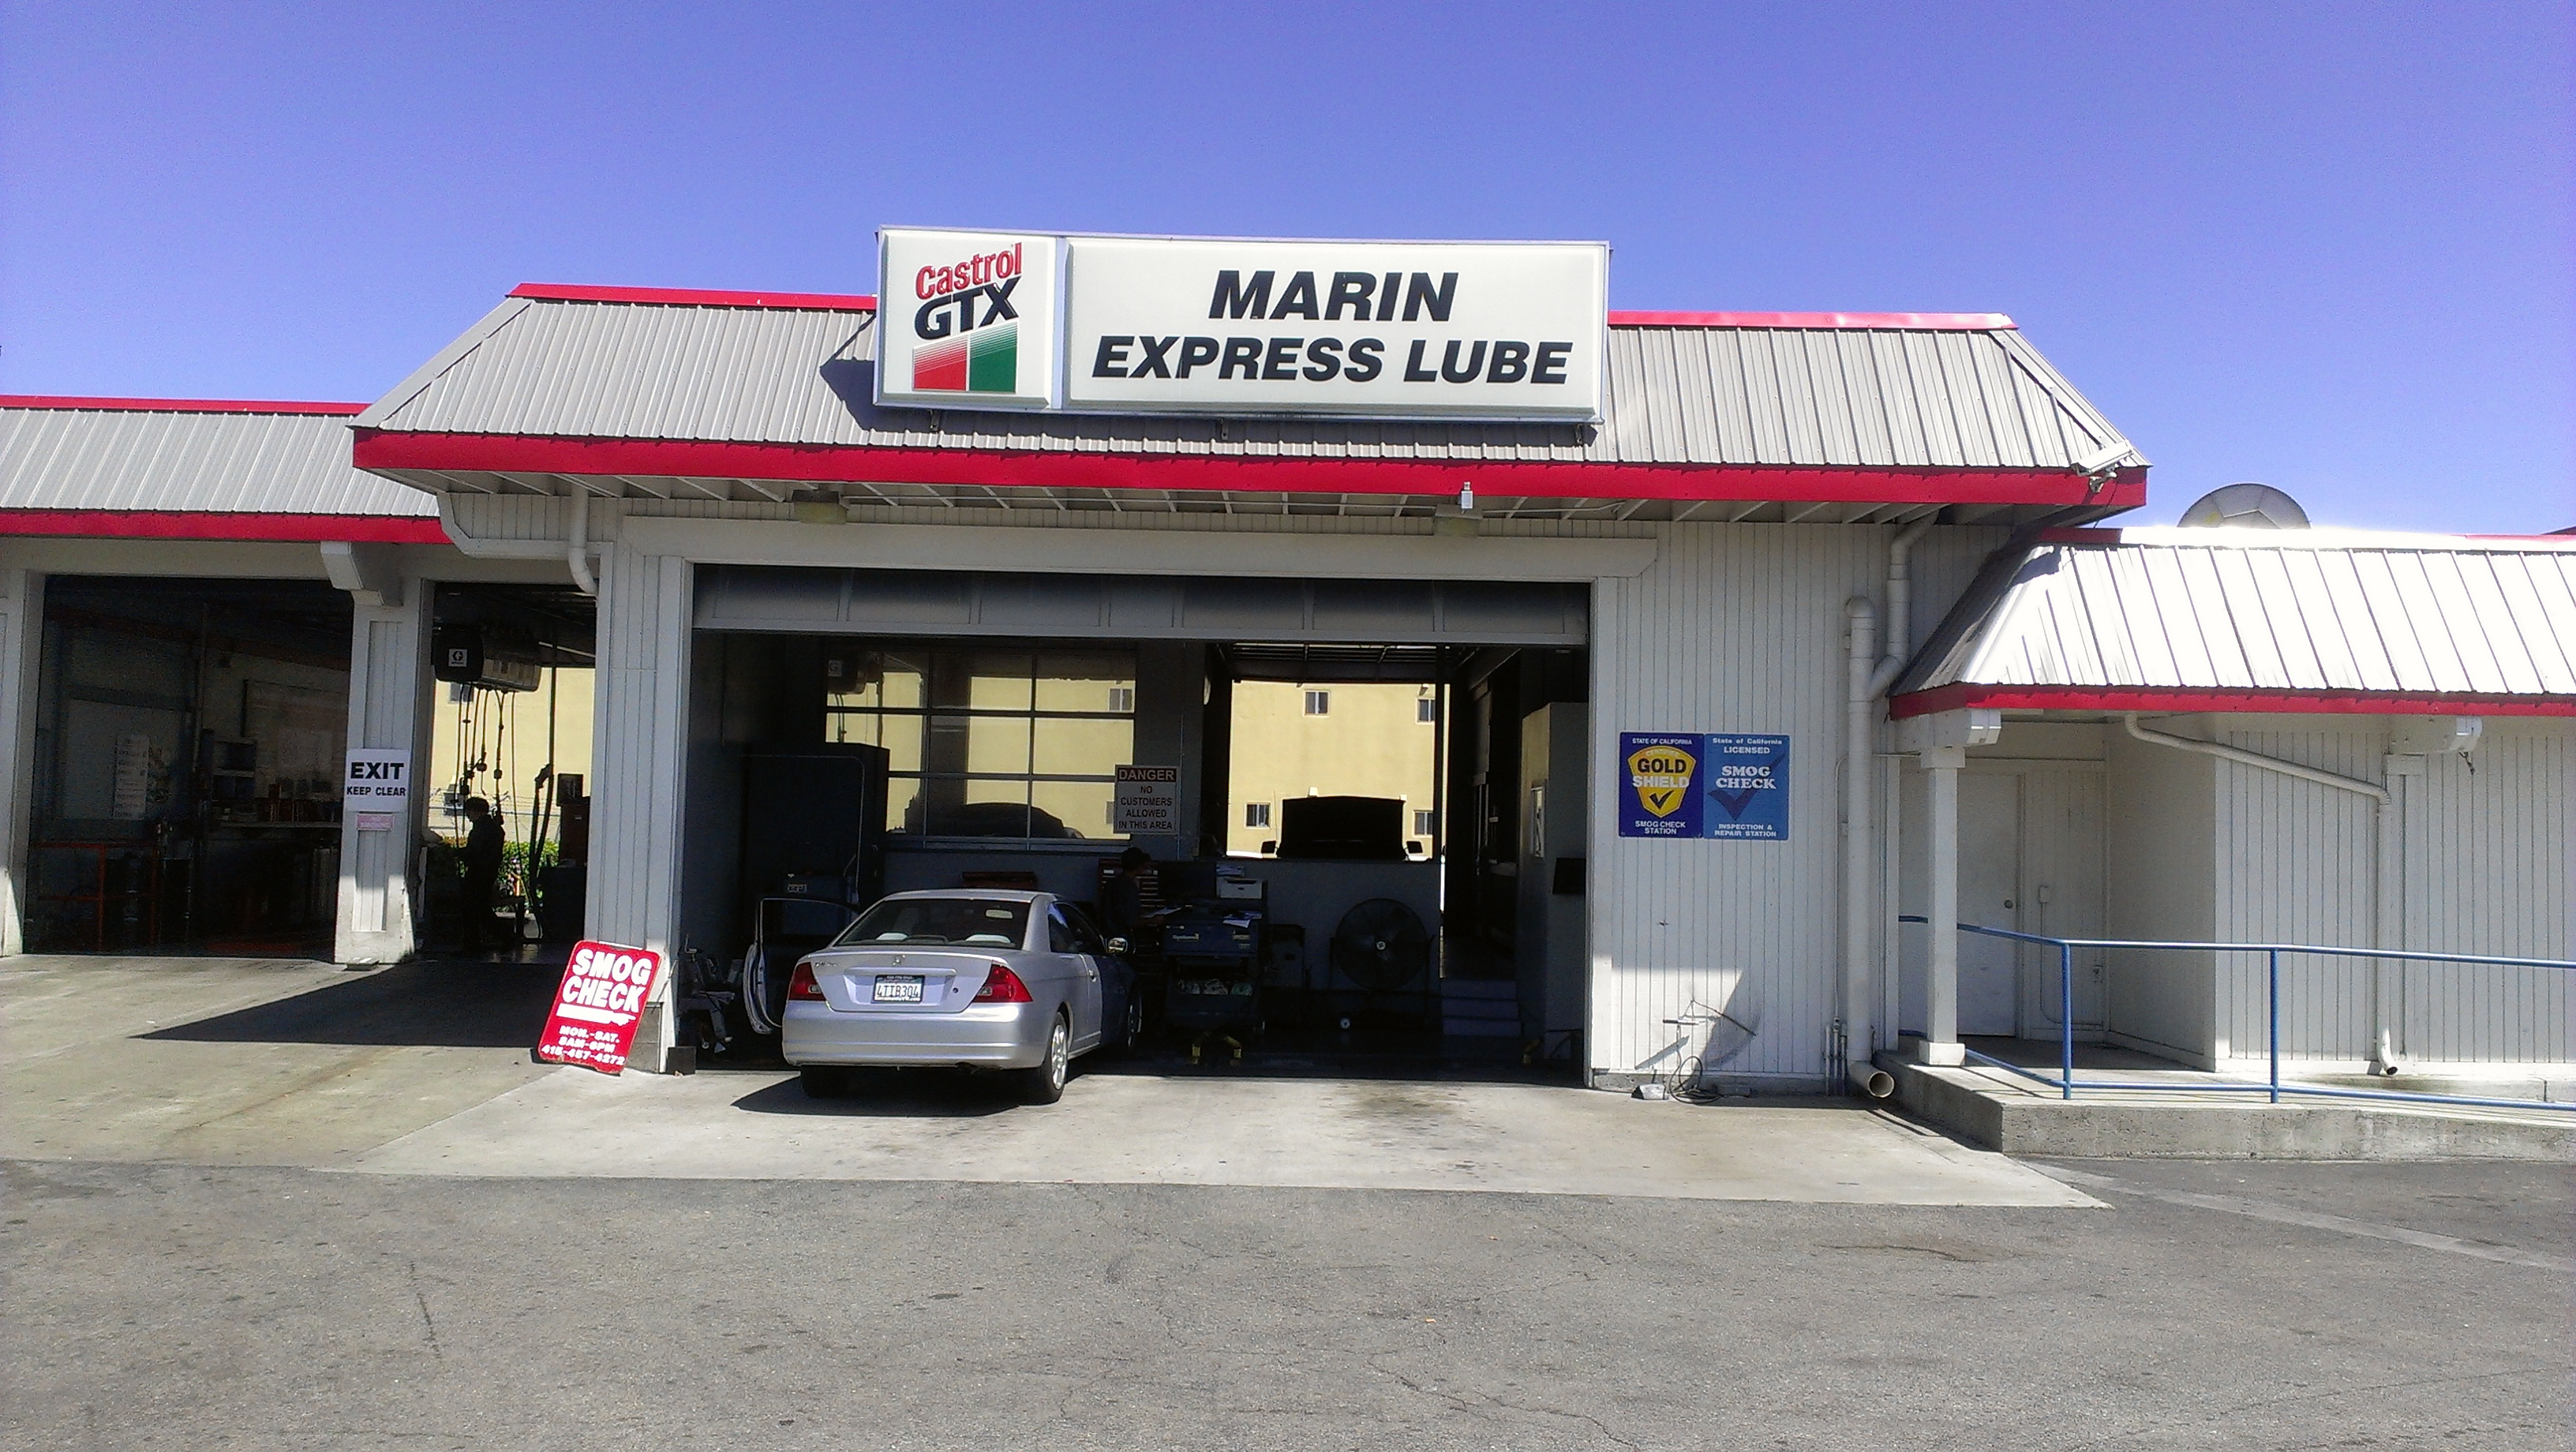 MARIN EXPRESS LUBE & DIAGNOSTIC CENTER